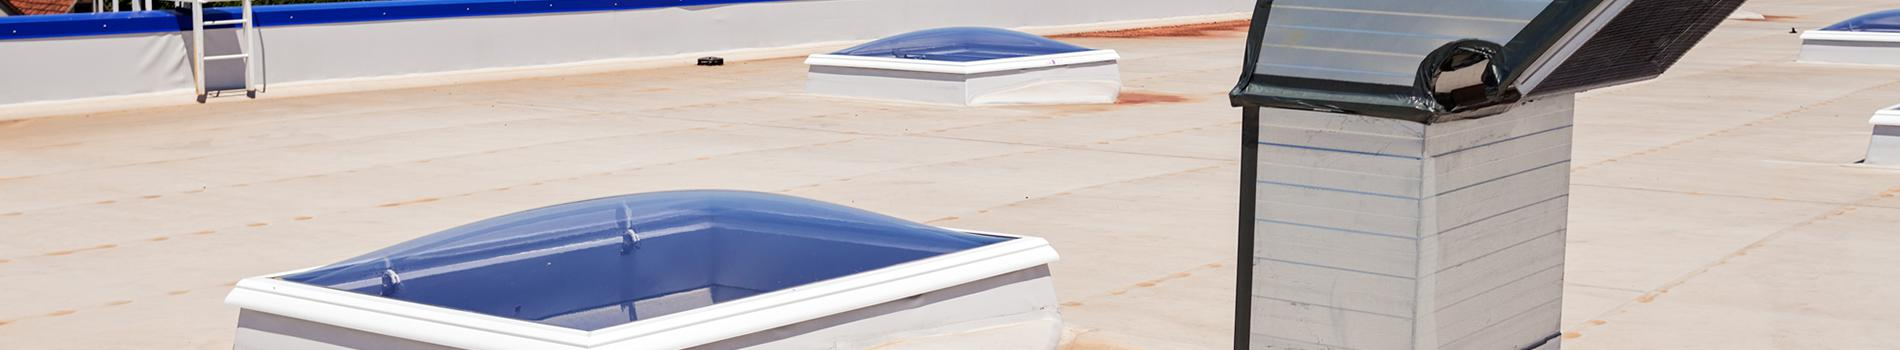 Commercial Roofing Services in the Greater Houston, Texas Area